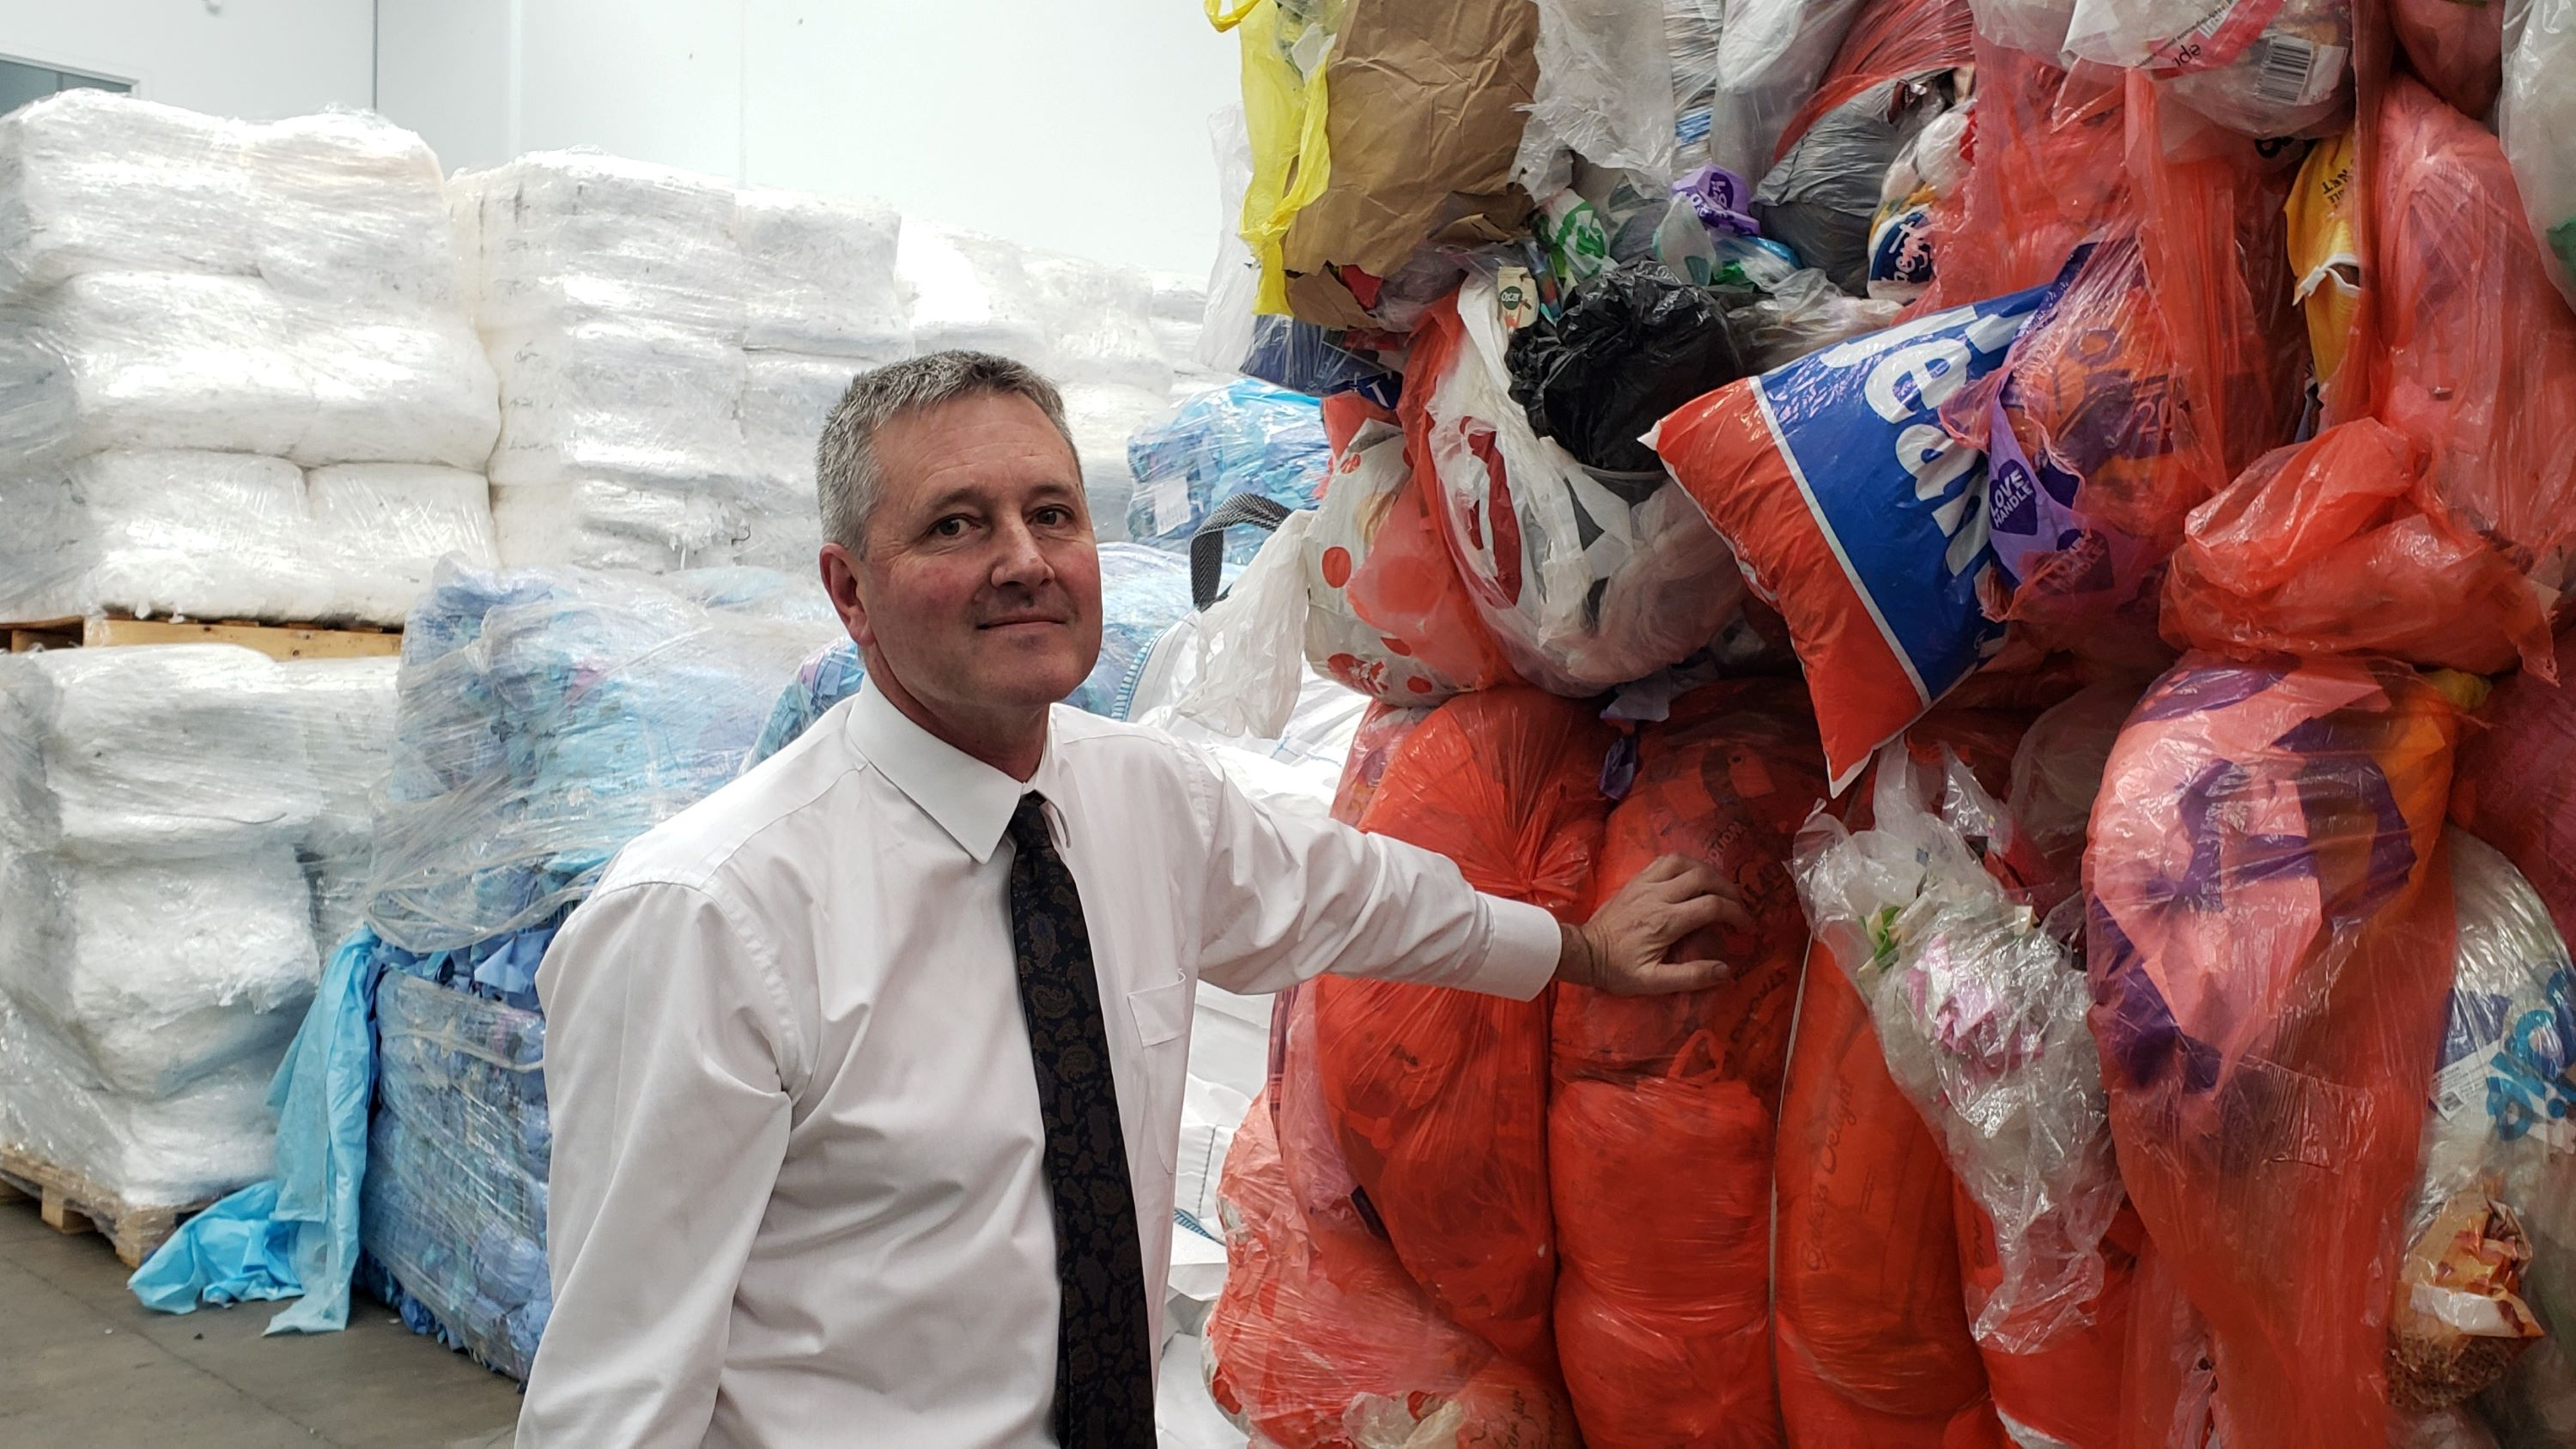 Mark Yates of Replas – from rubbish to products